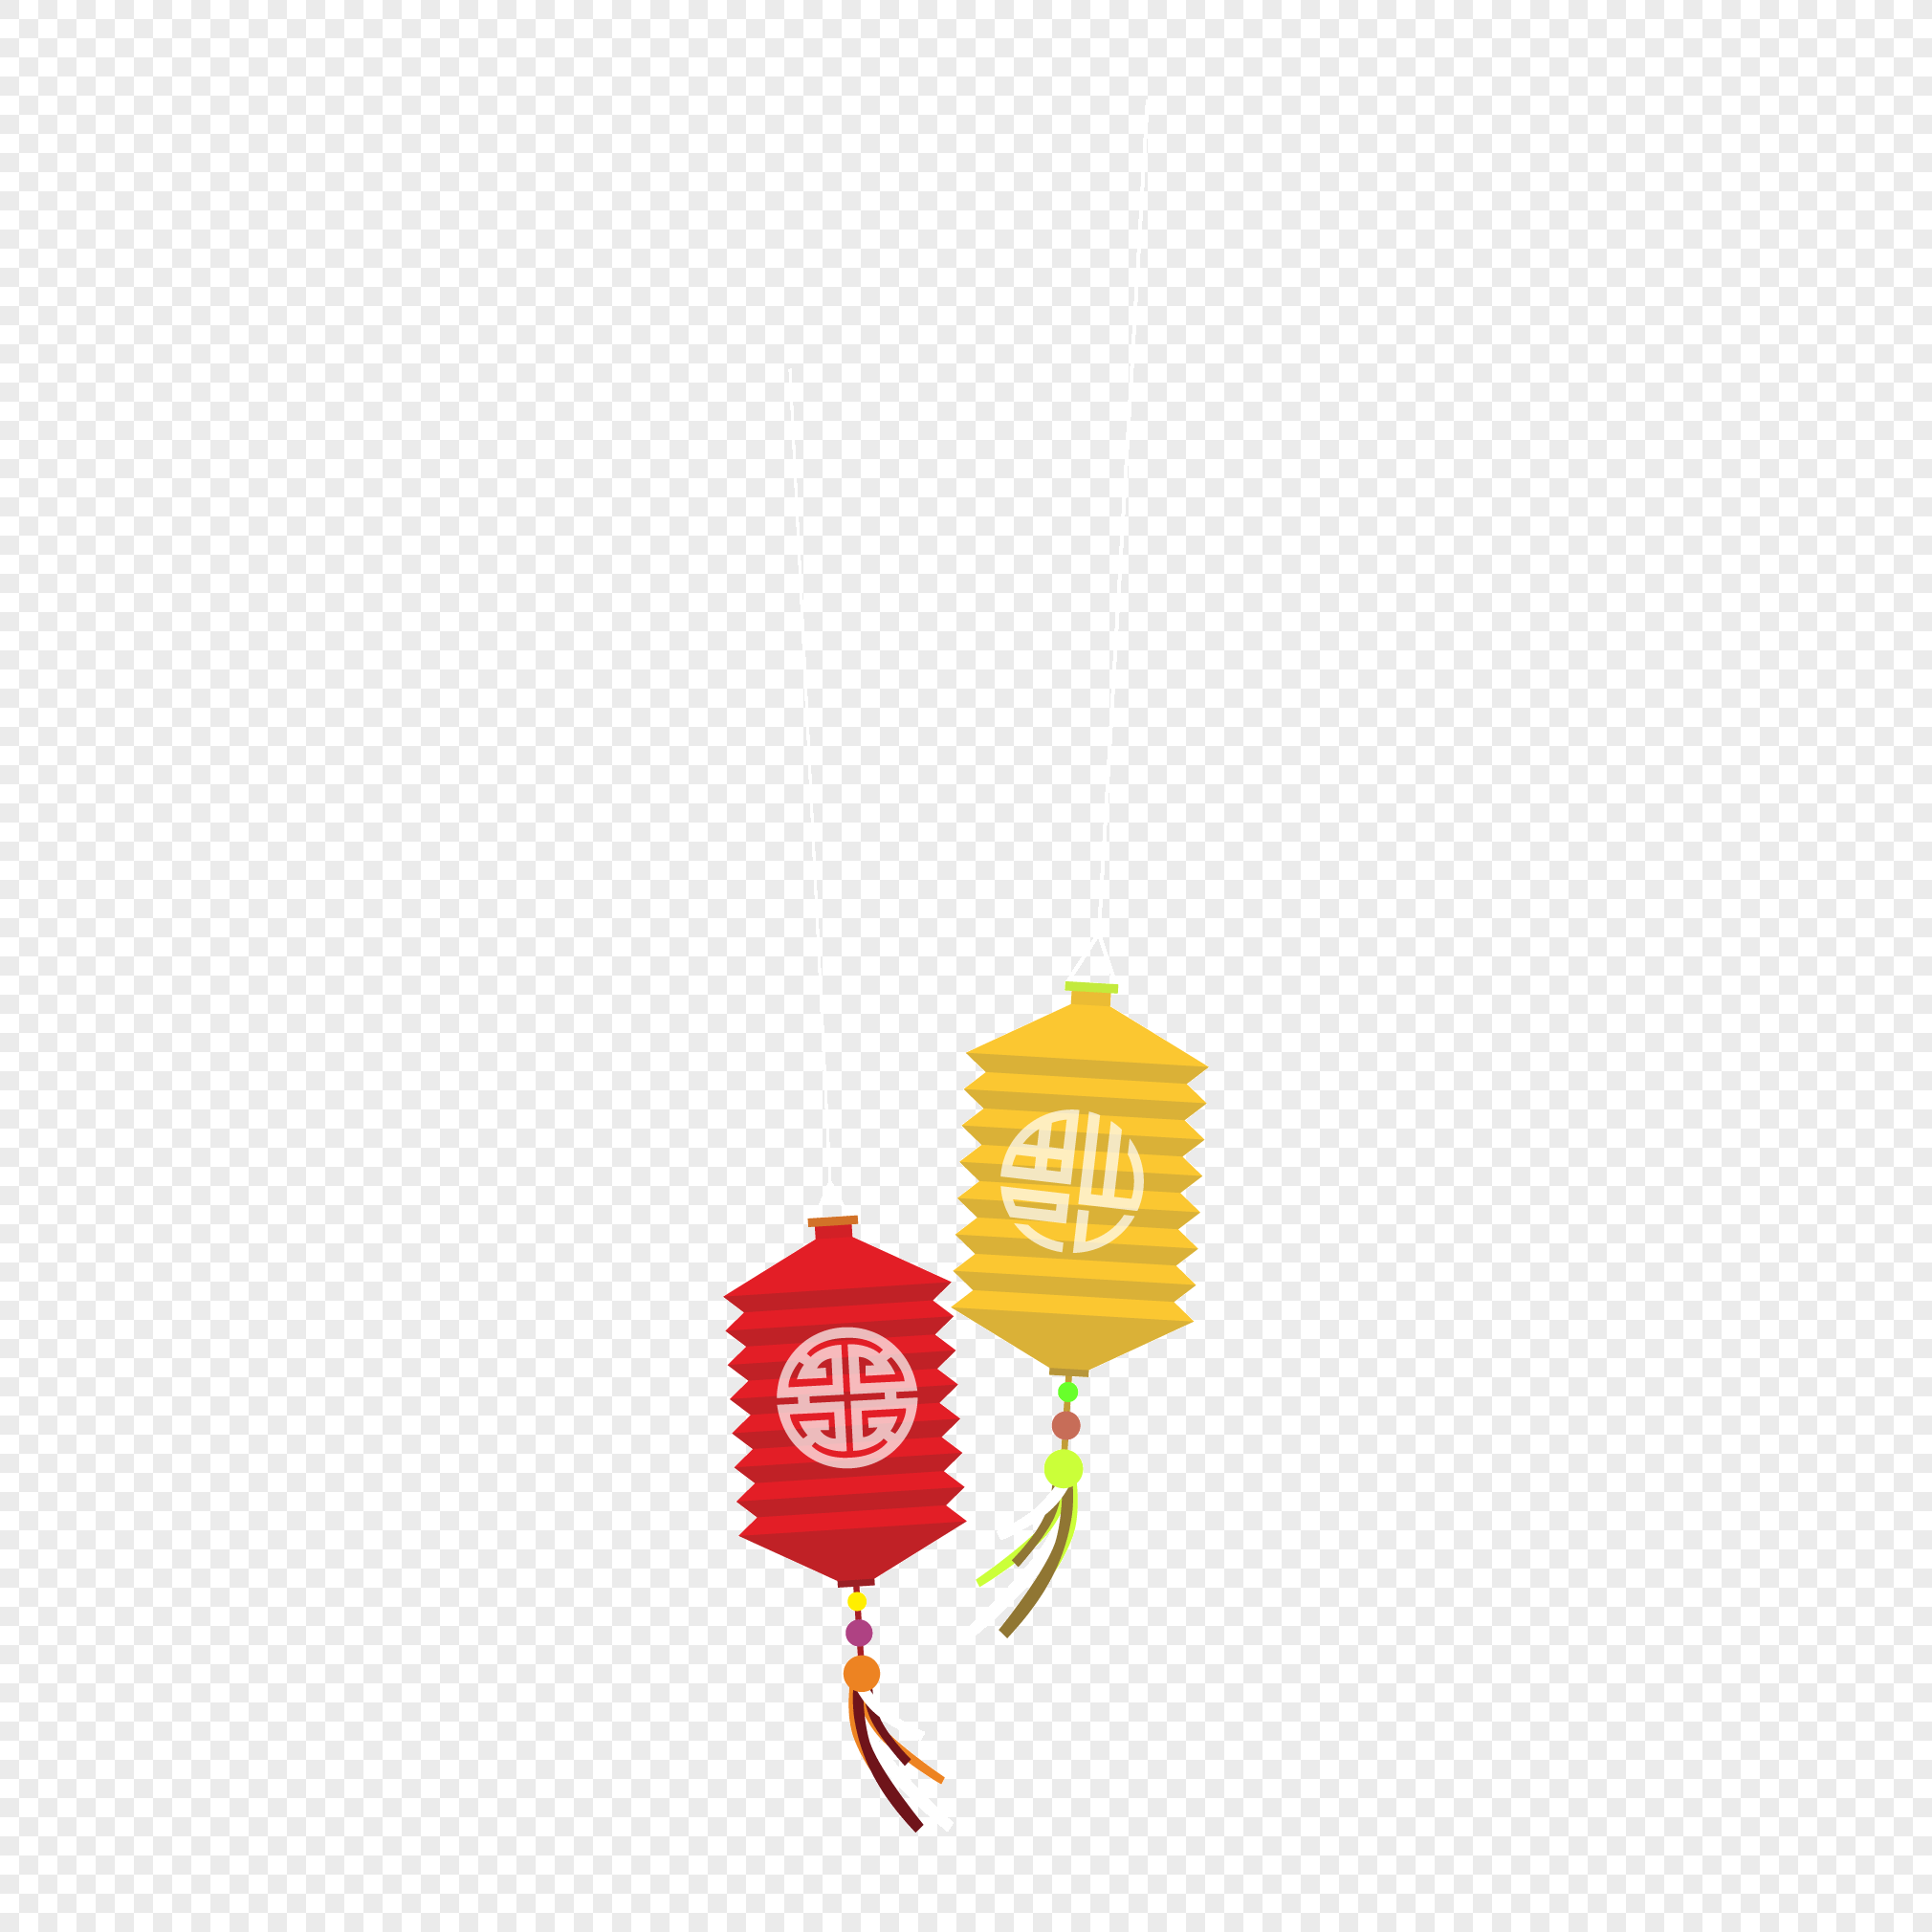 Origami Lantern Pattern Png Imagepicture Free Download